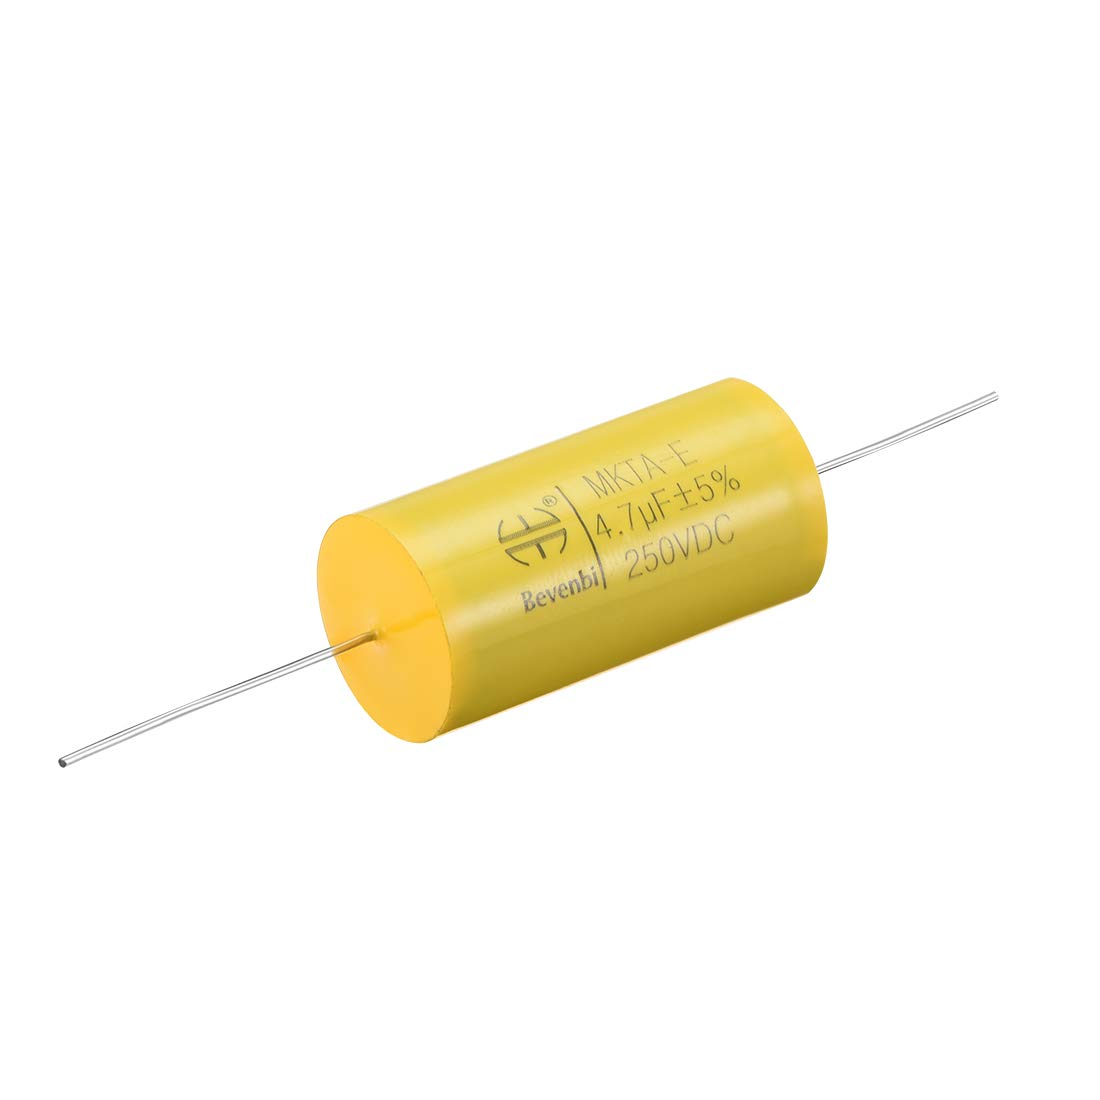 uxcell Film Capacitor 250V DC 15uF Round Axial Polyester Film Capacitor for Audio Divider Yellow